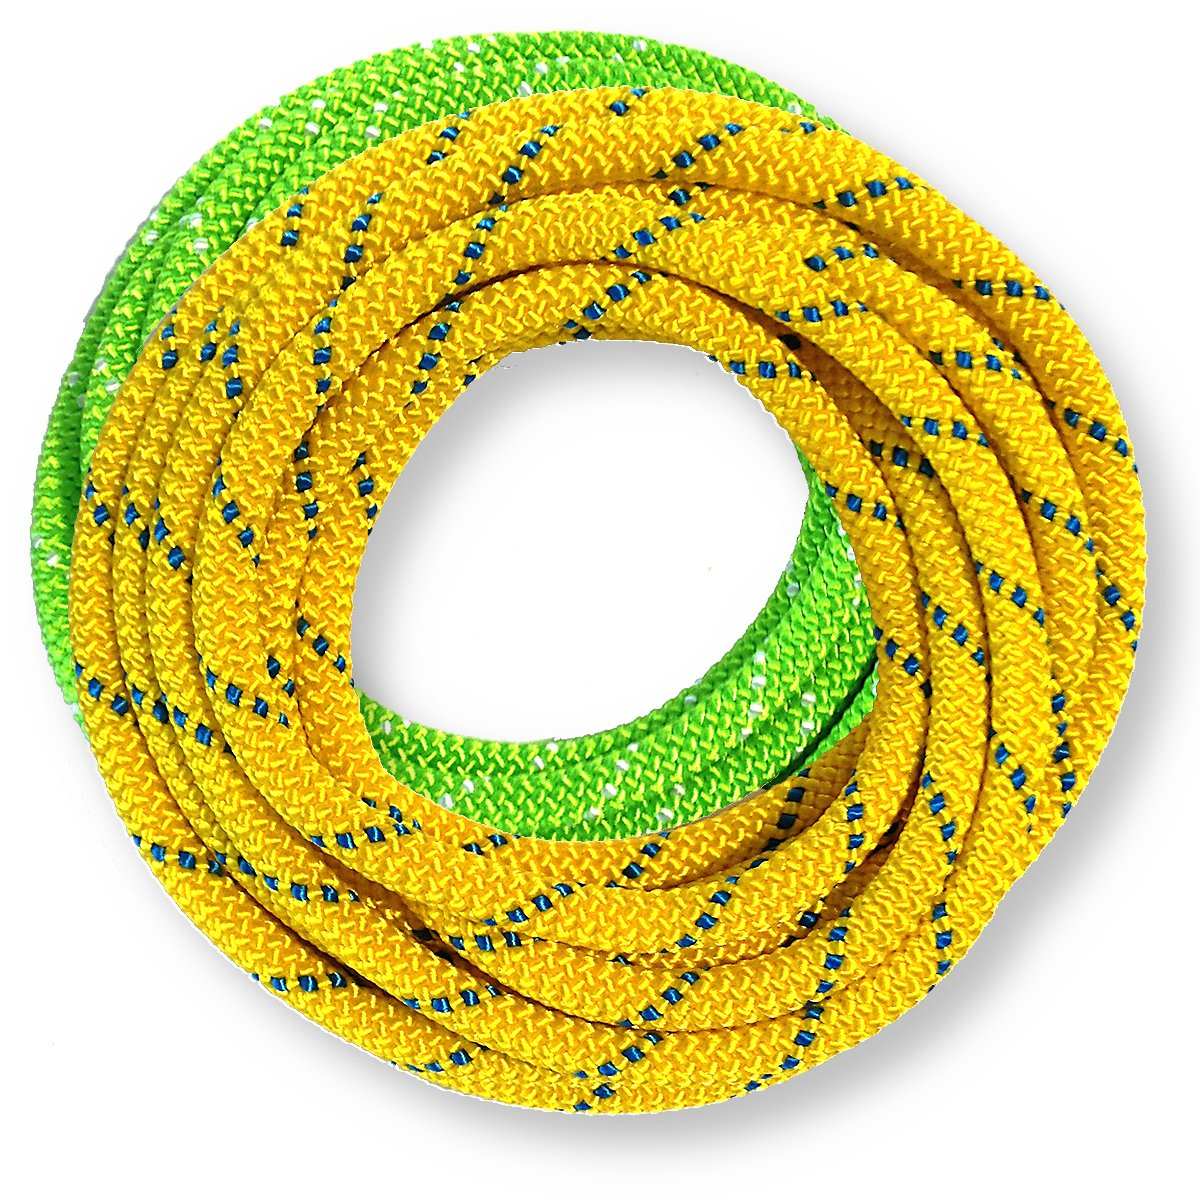 OmniProGear 8mm x 11 feet Prusik Cord Lime & 8mm x 11 feet Yellow Made IN USA MBS 16.44kN (3700lbs) by OmniProGear